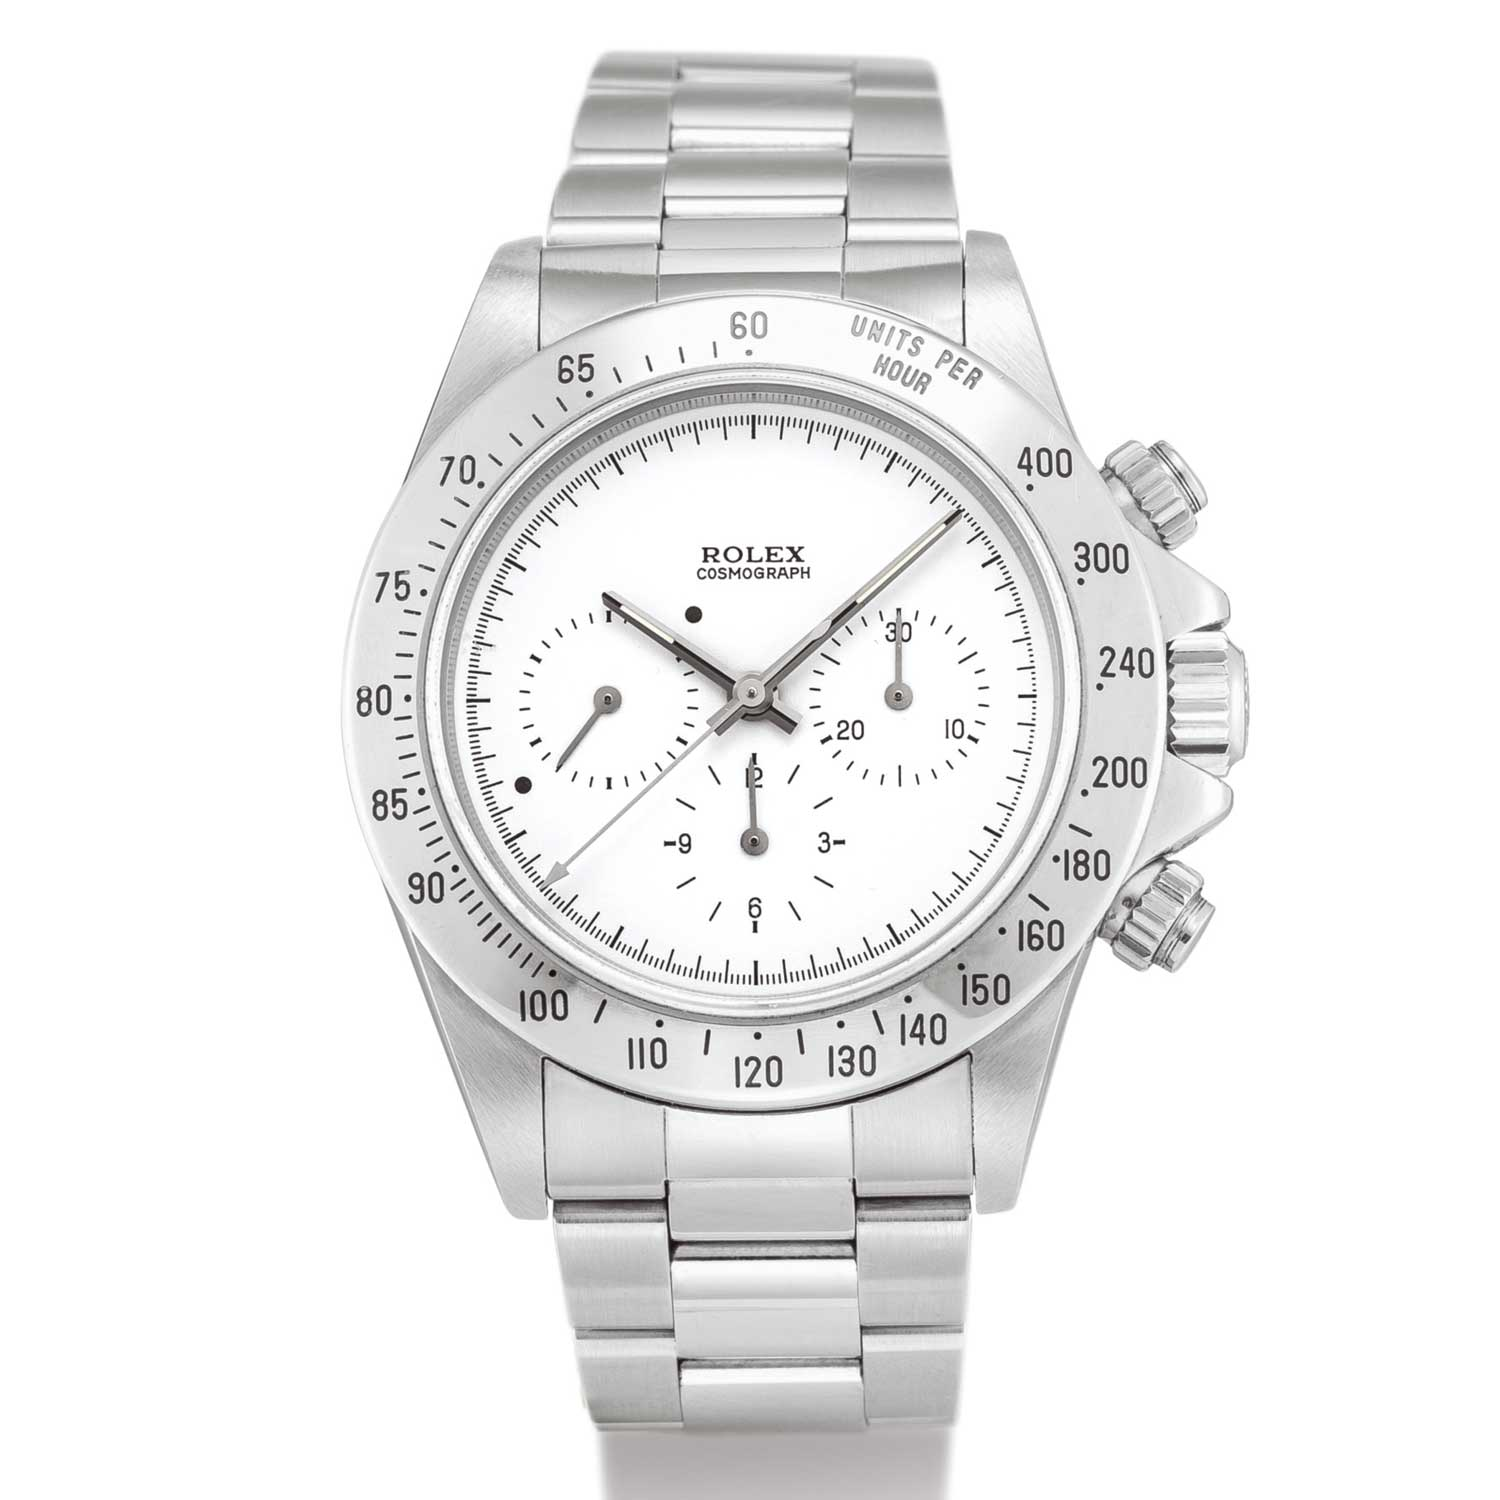 Rolex Cosmograph Daytona, Reference 16520 A Stainless Steel Chronograph Wristwatch With Test Dial And Bracelet, Circa 1998